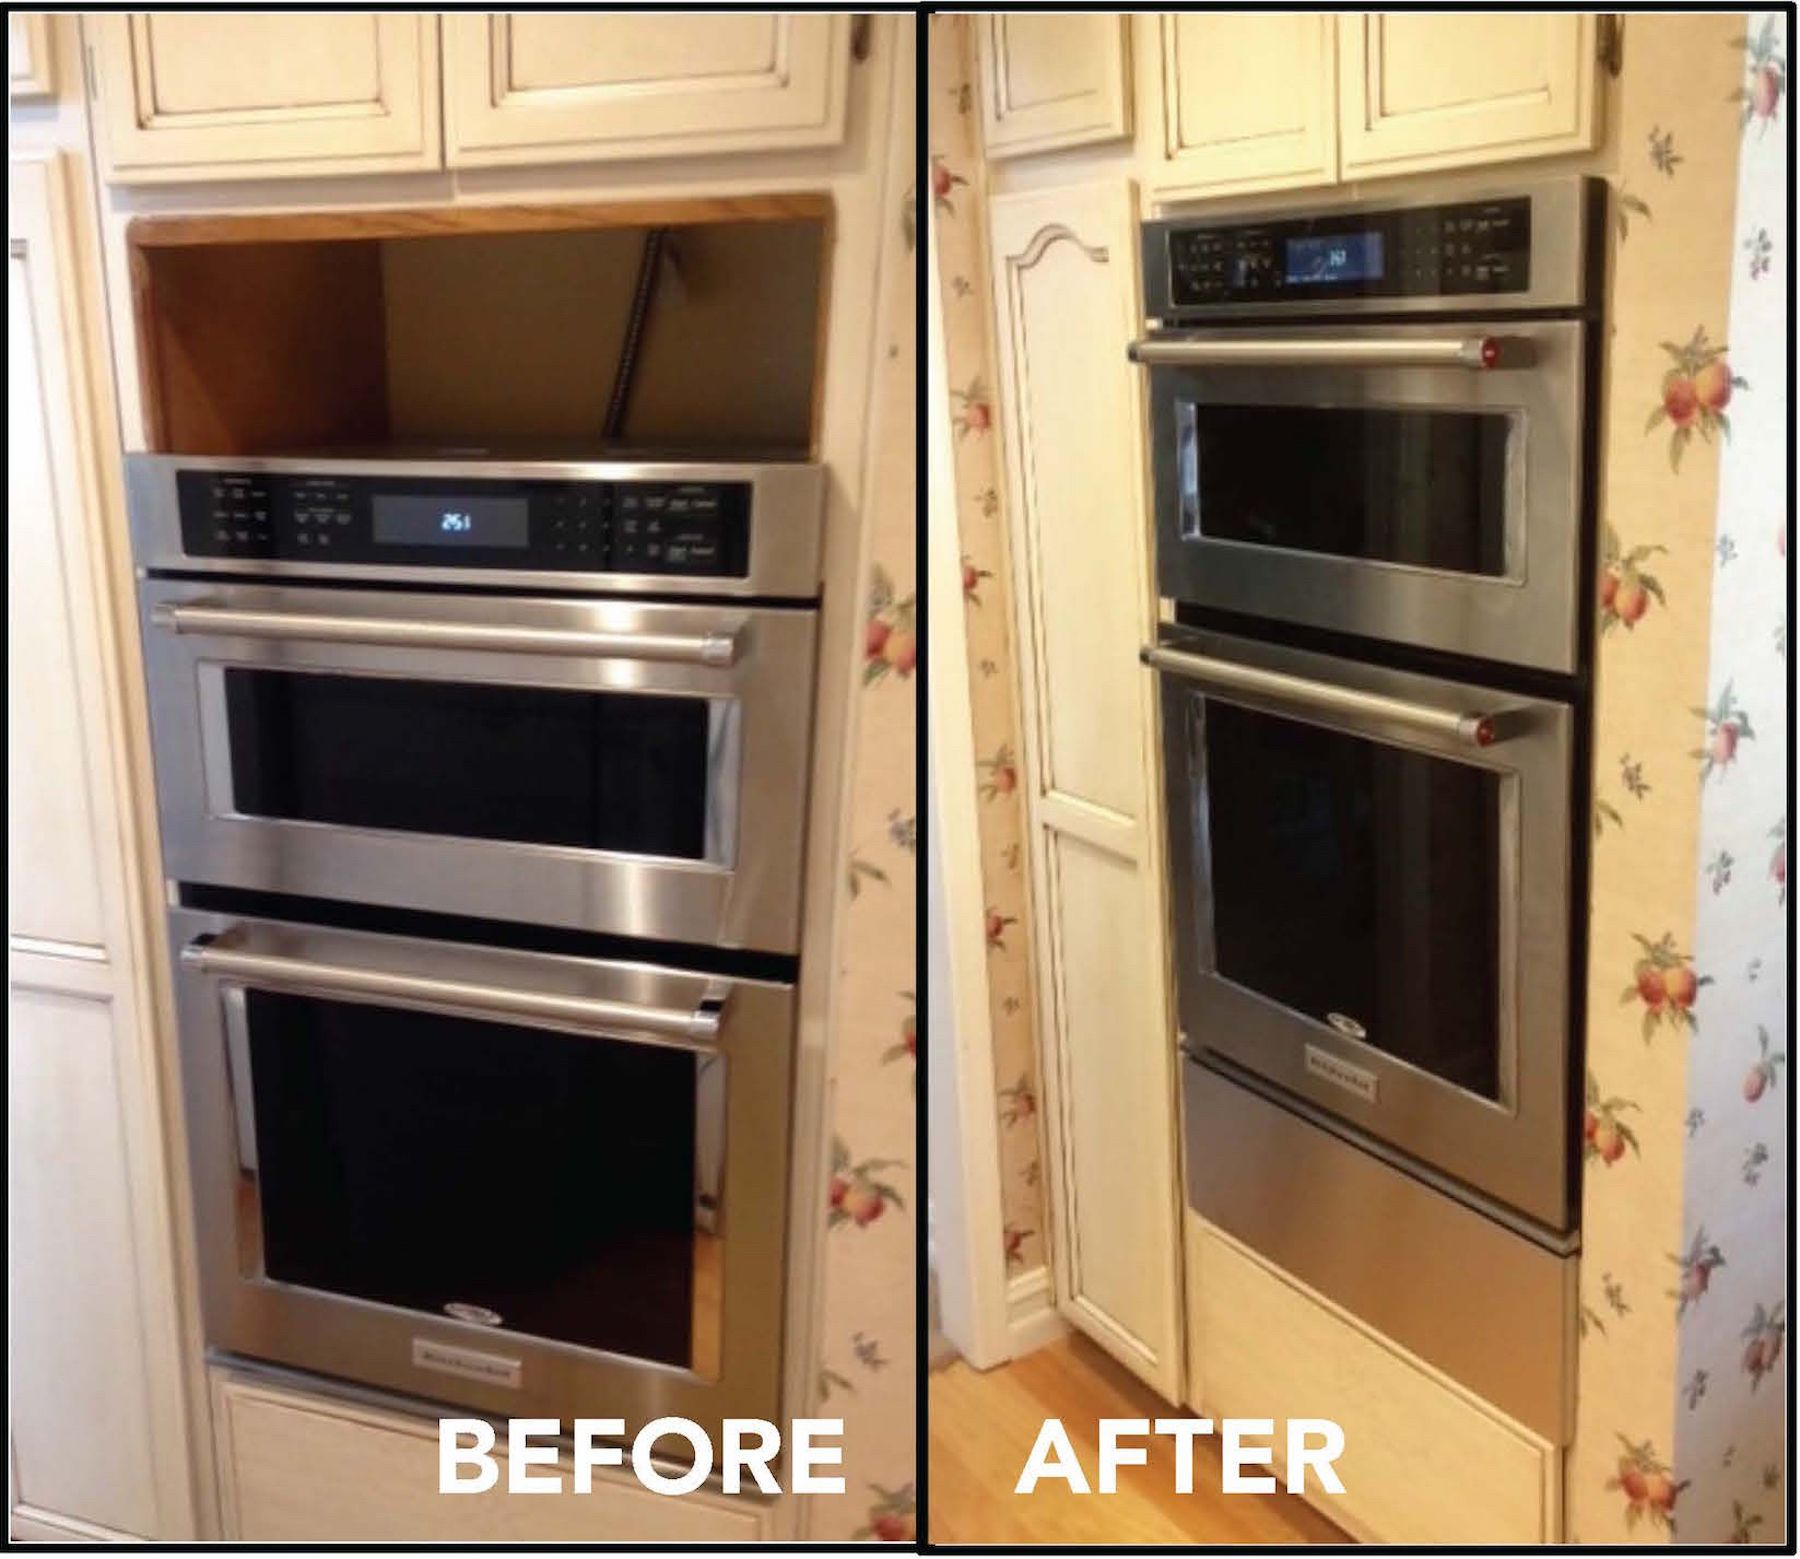 Kitchenaid Wall Oven Filler Strip Before After Wall Oven Wall Oven Kitchen Electric Wall Oven